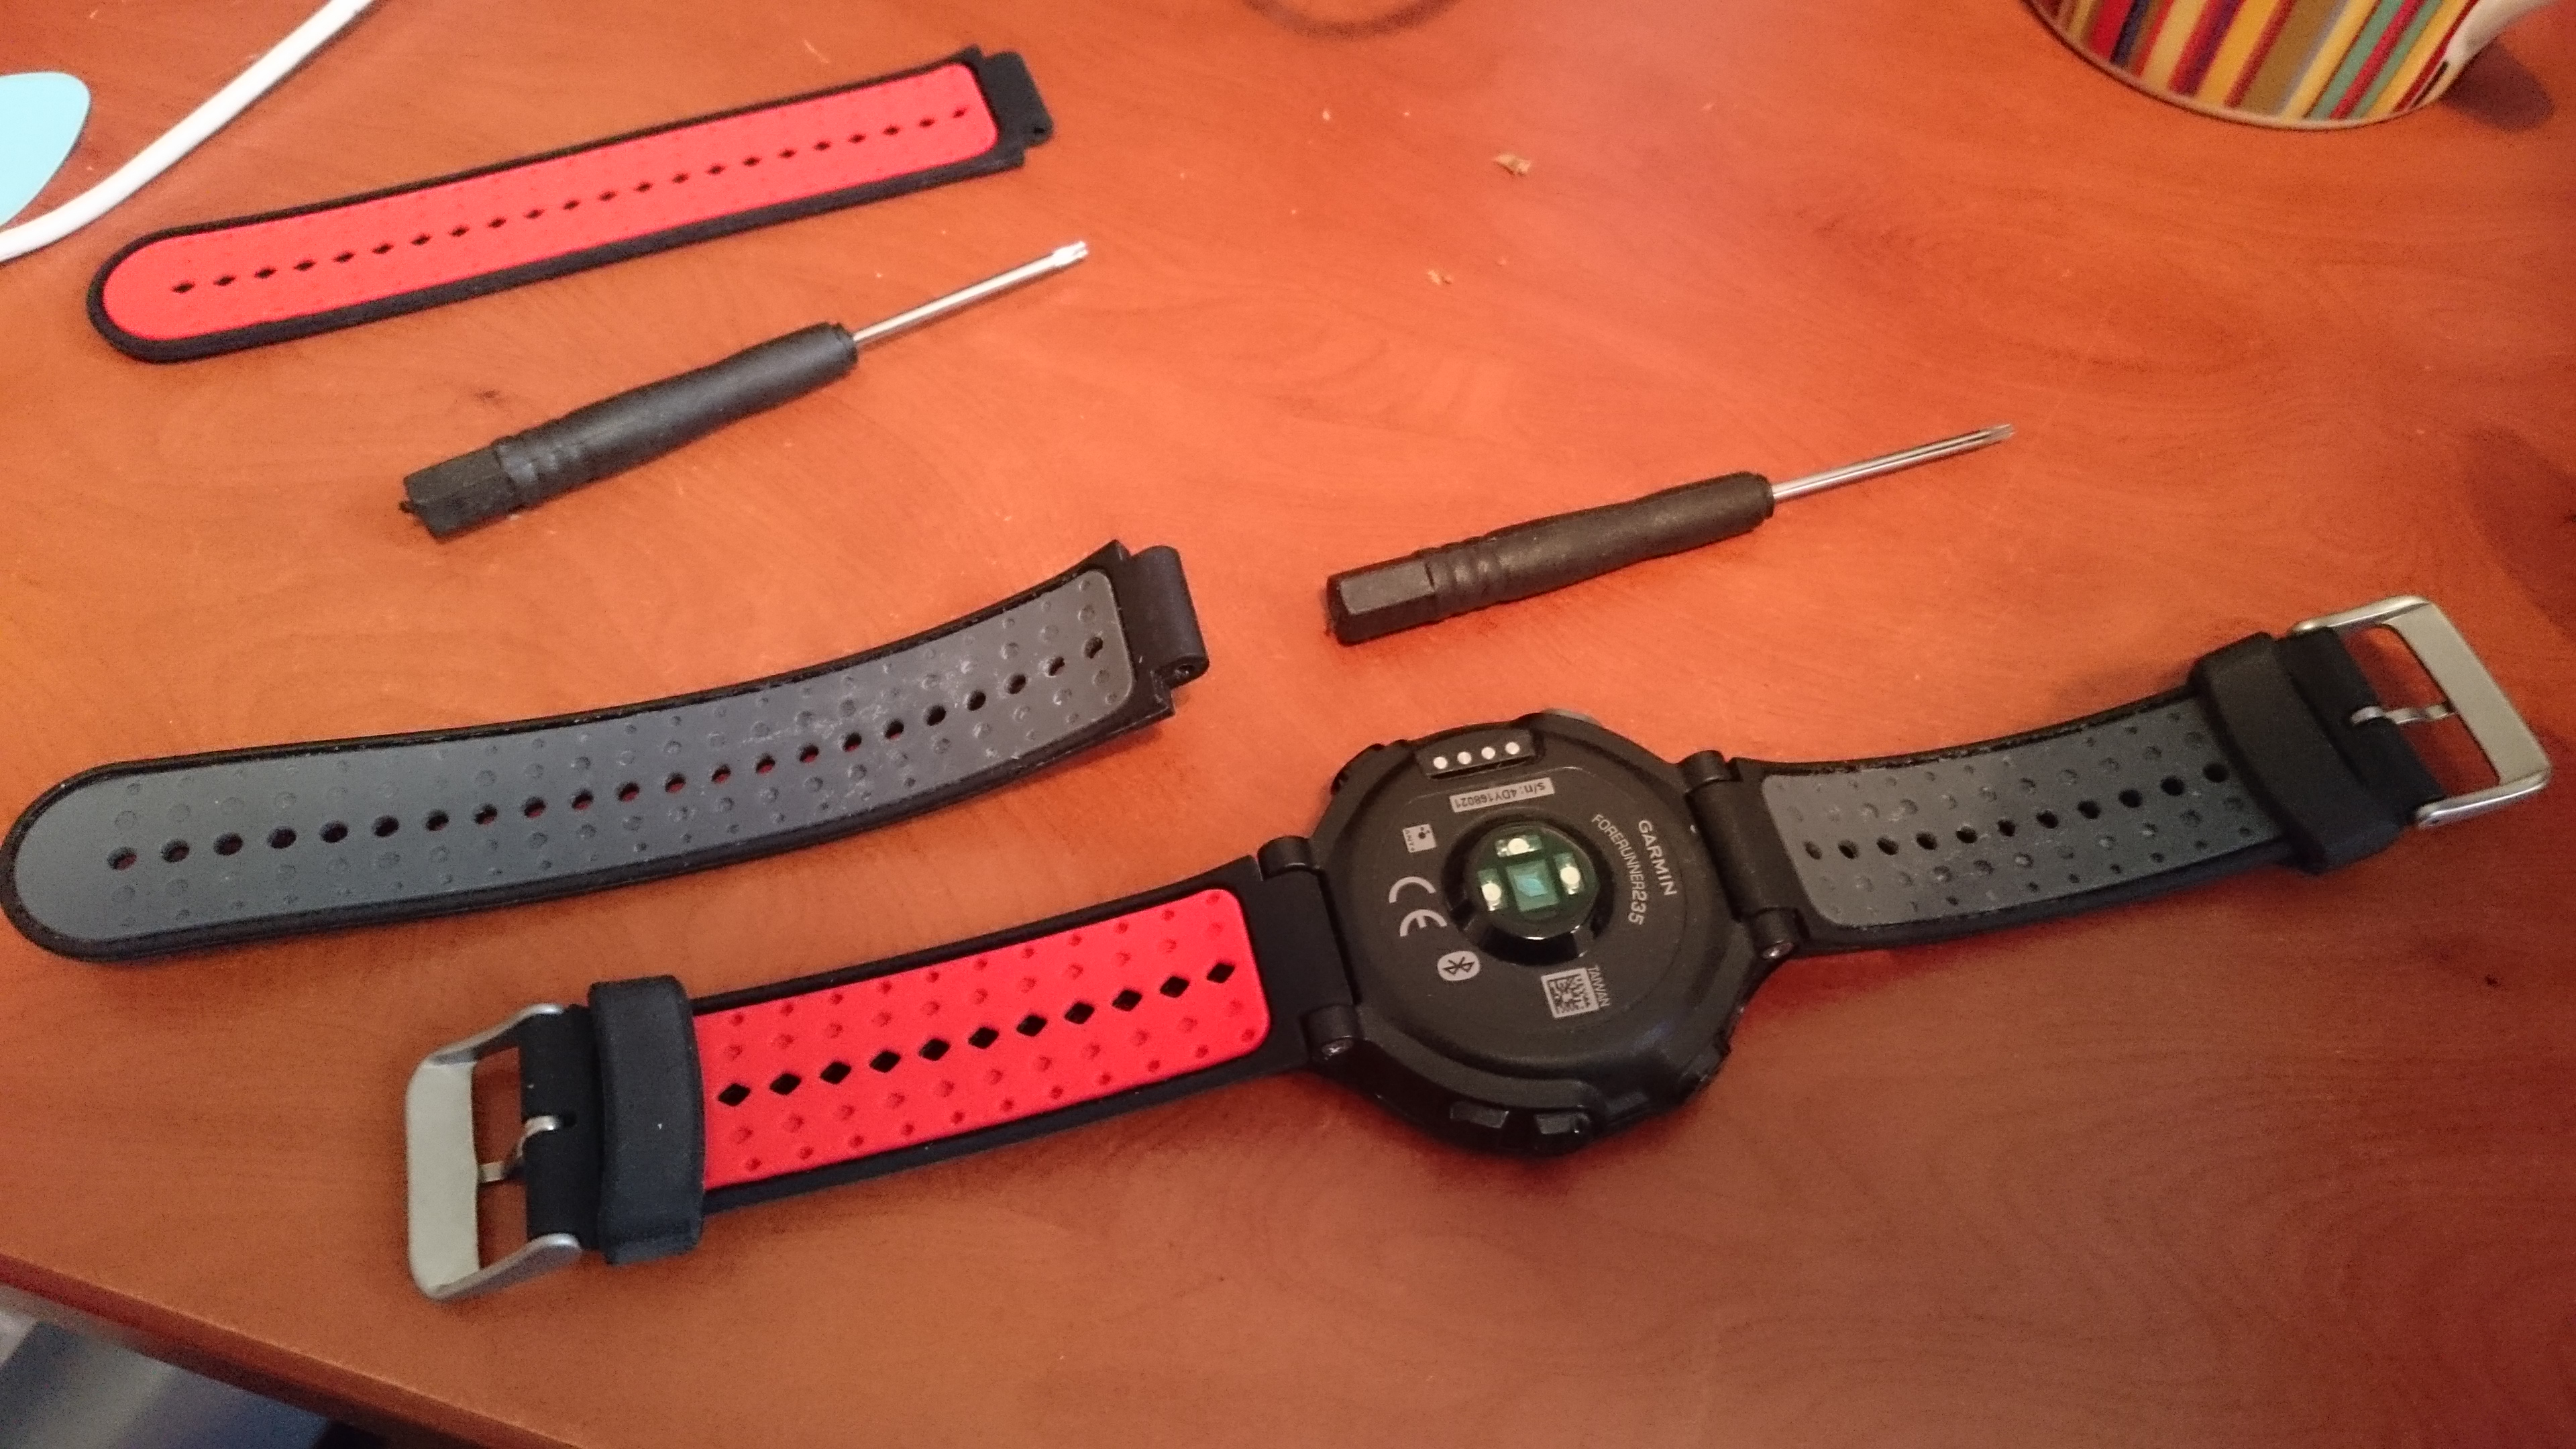 """I remove the """"tongue"""" part of the strap from my watch (i.e. the non-buckle part), and replace it with the buckle part of the new strap. Yes, the watch now has two buckles on it."""